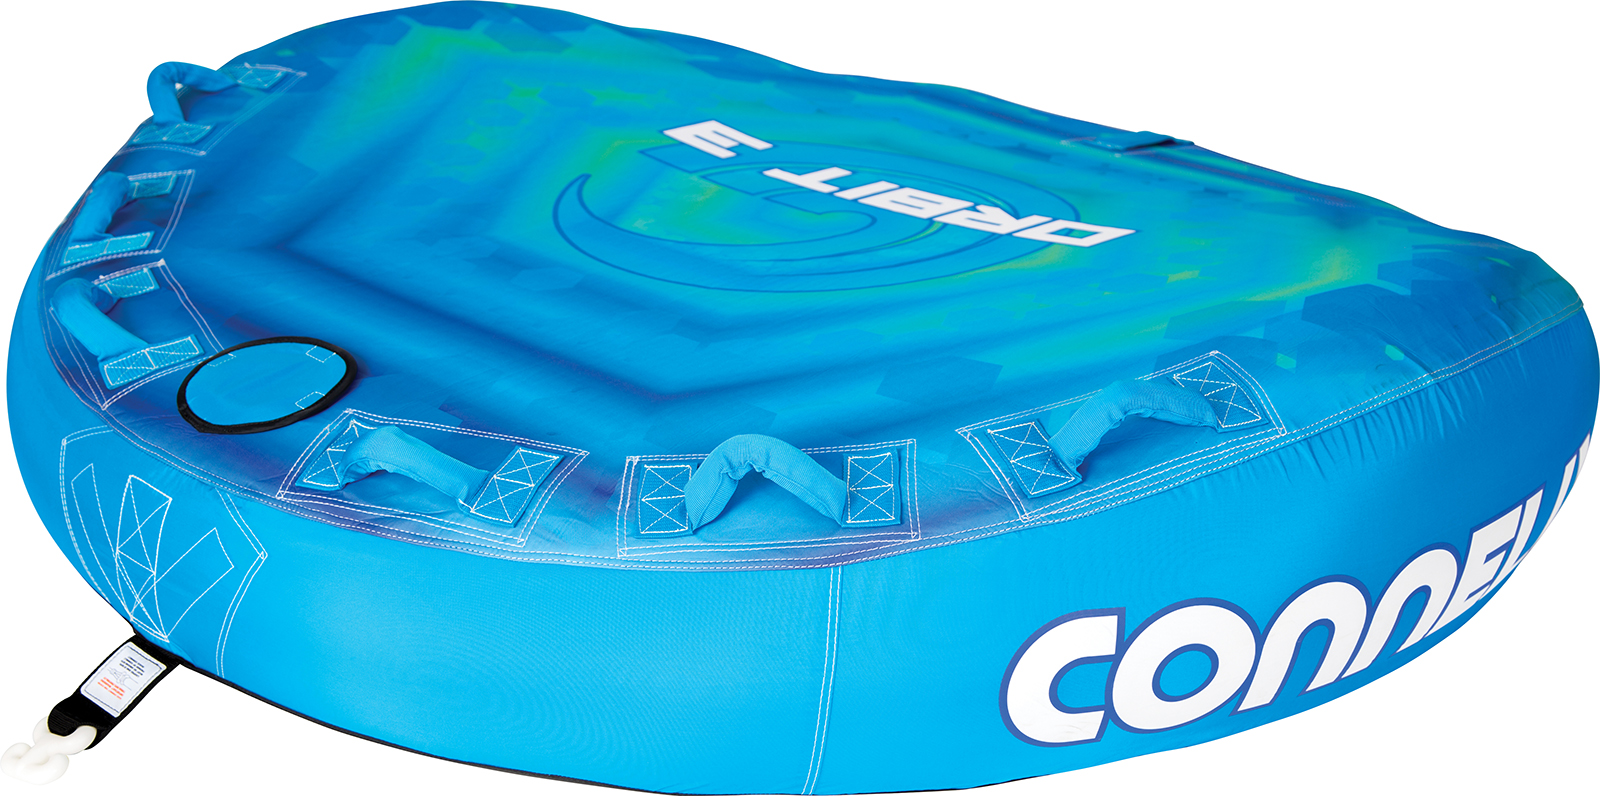 ORBIT 3 SOFT TOP TOWABLE TUBE CONNELLY 2019